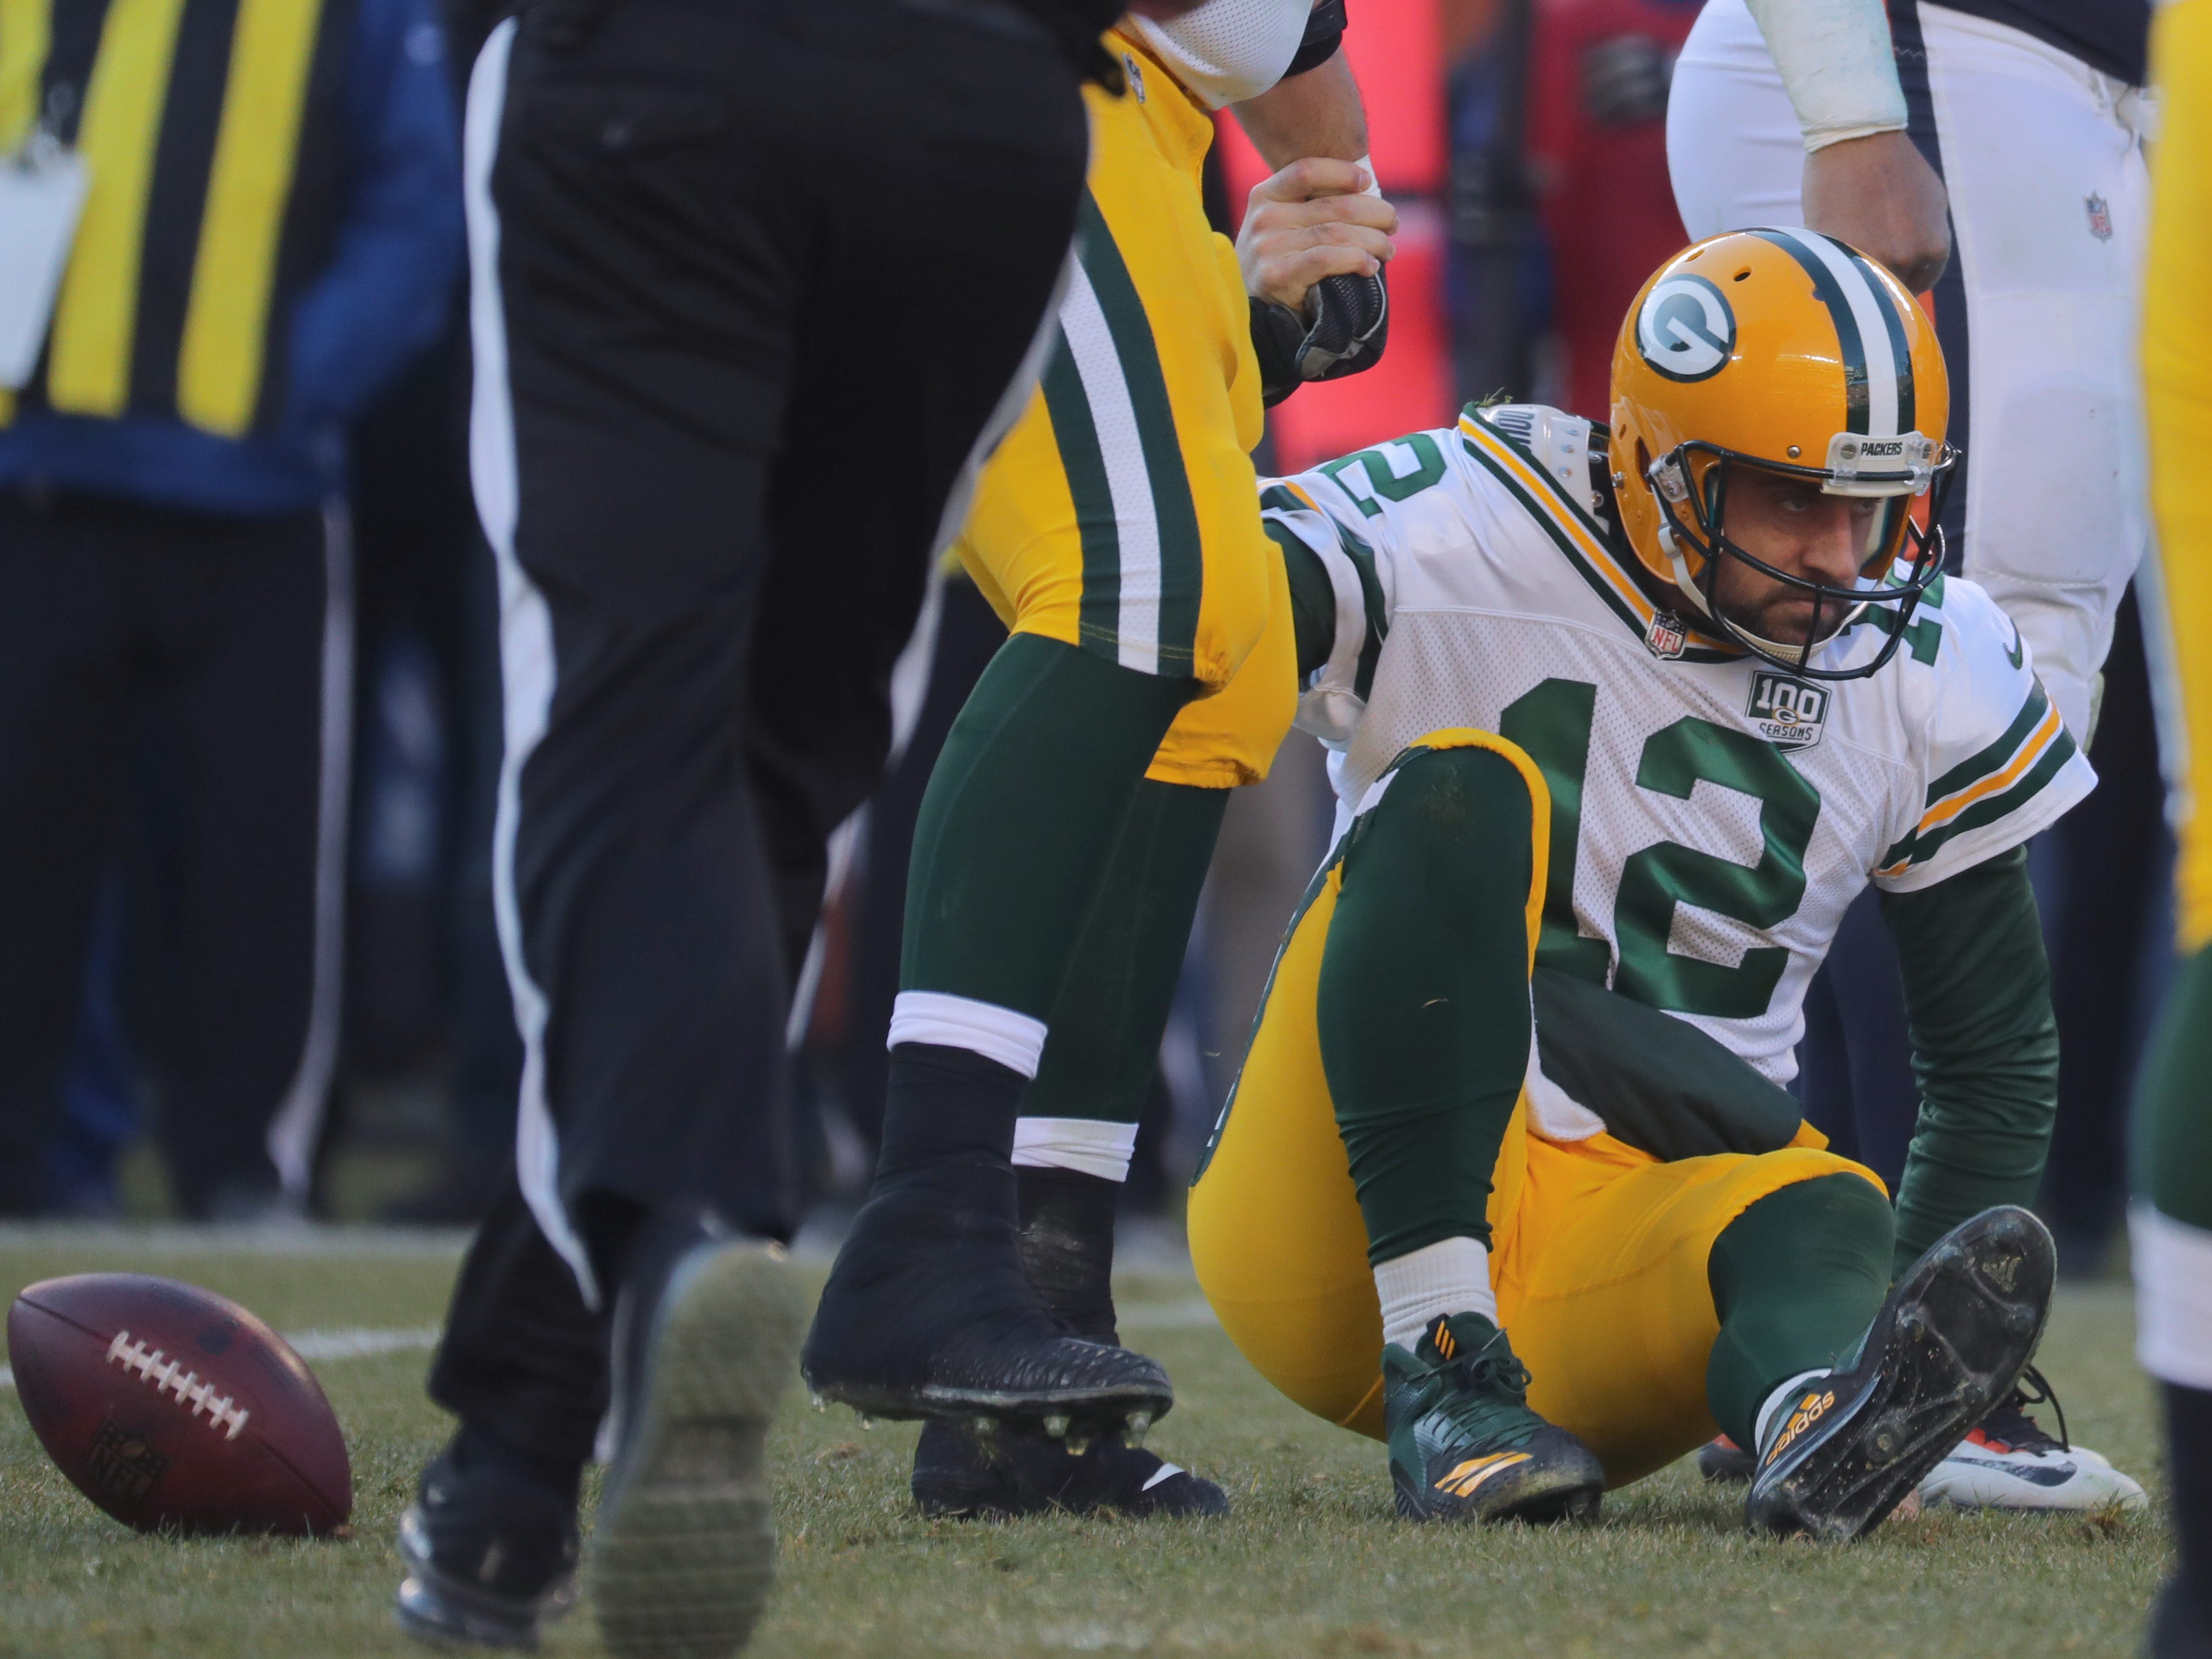 Green Bay Packers quarterback Aaron Rodgers (12) is helped up after being sacked during the fourth quarter of their game Sunday, December 25, 2018 at Soldier Field in Chicago, Ill. The Chicago Bears beat the Green Bay Packers 24-17.  MARK HOFFMAN/MILWAUKEE JOURNAL SENTINEL